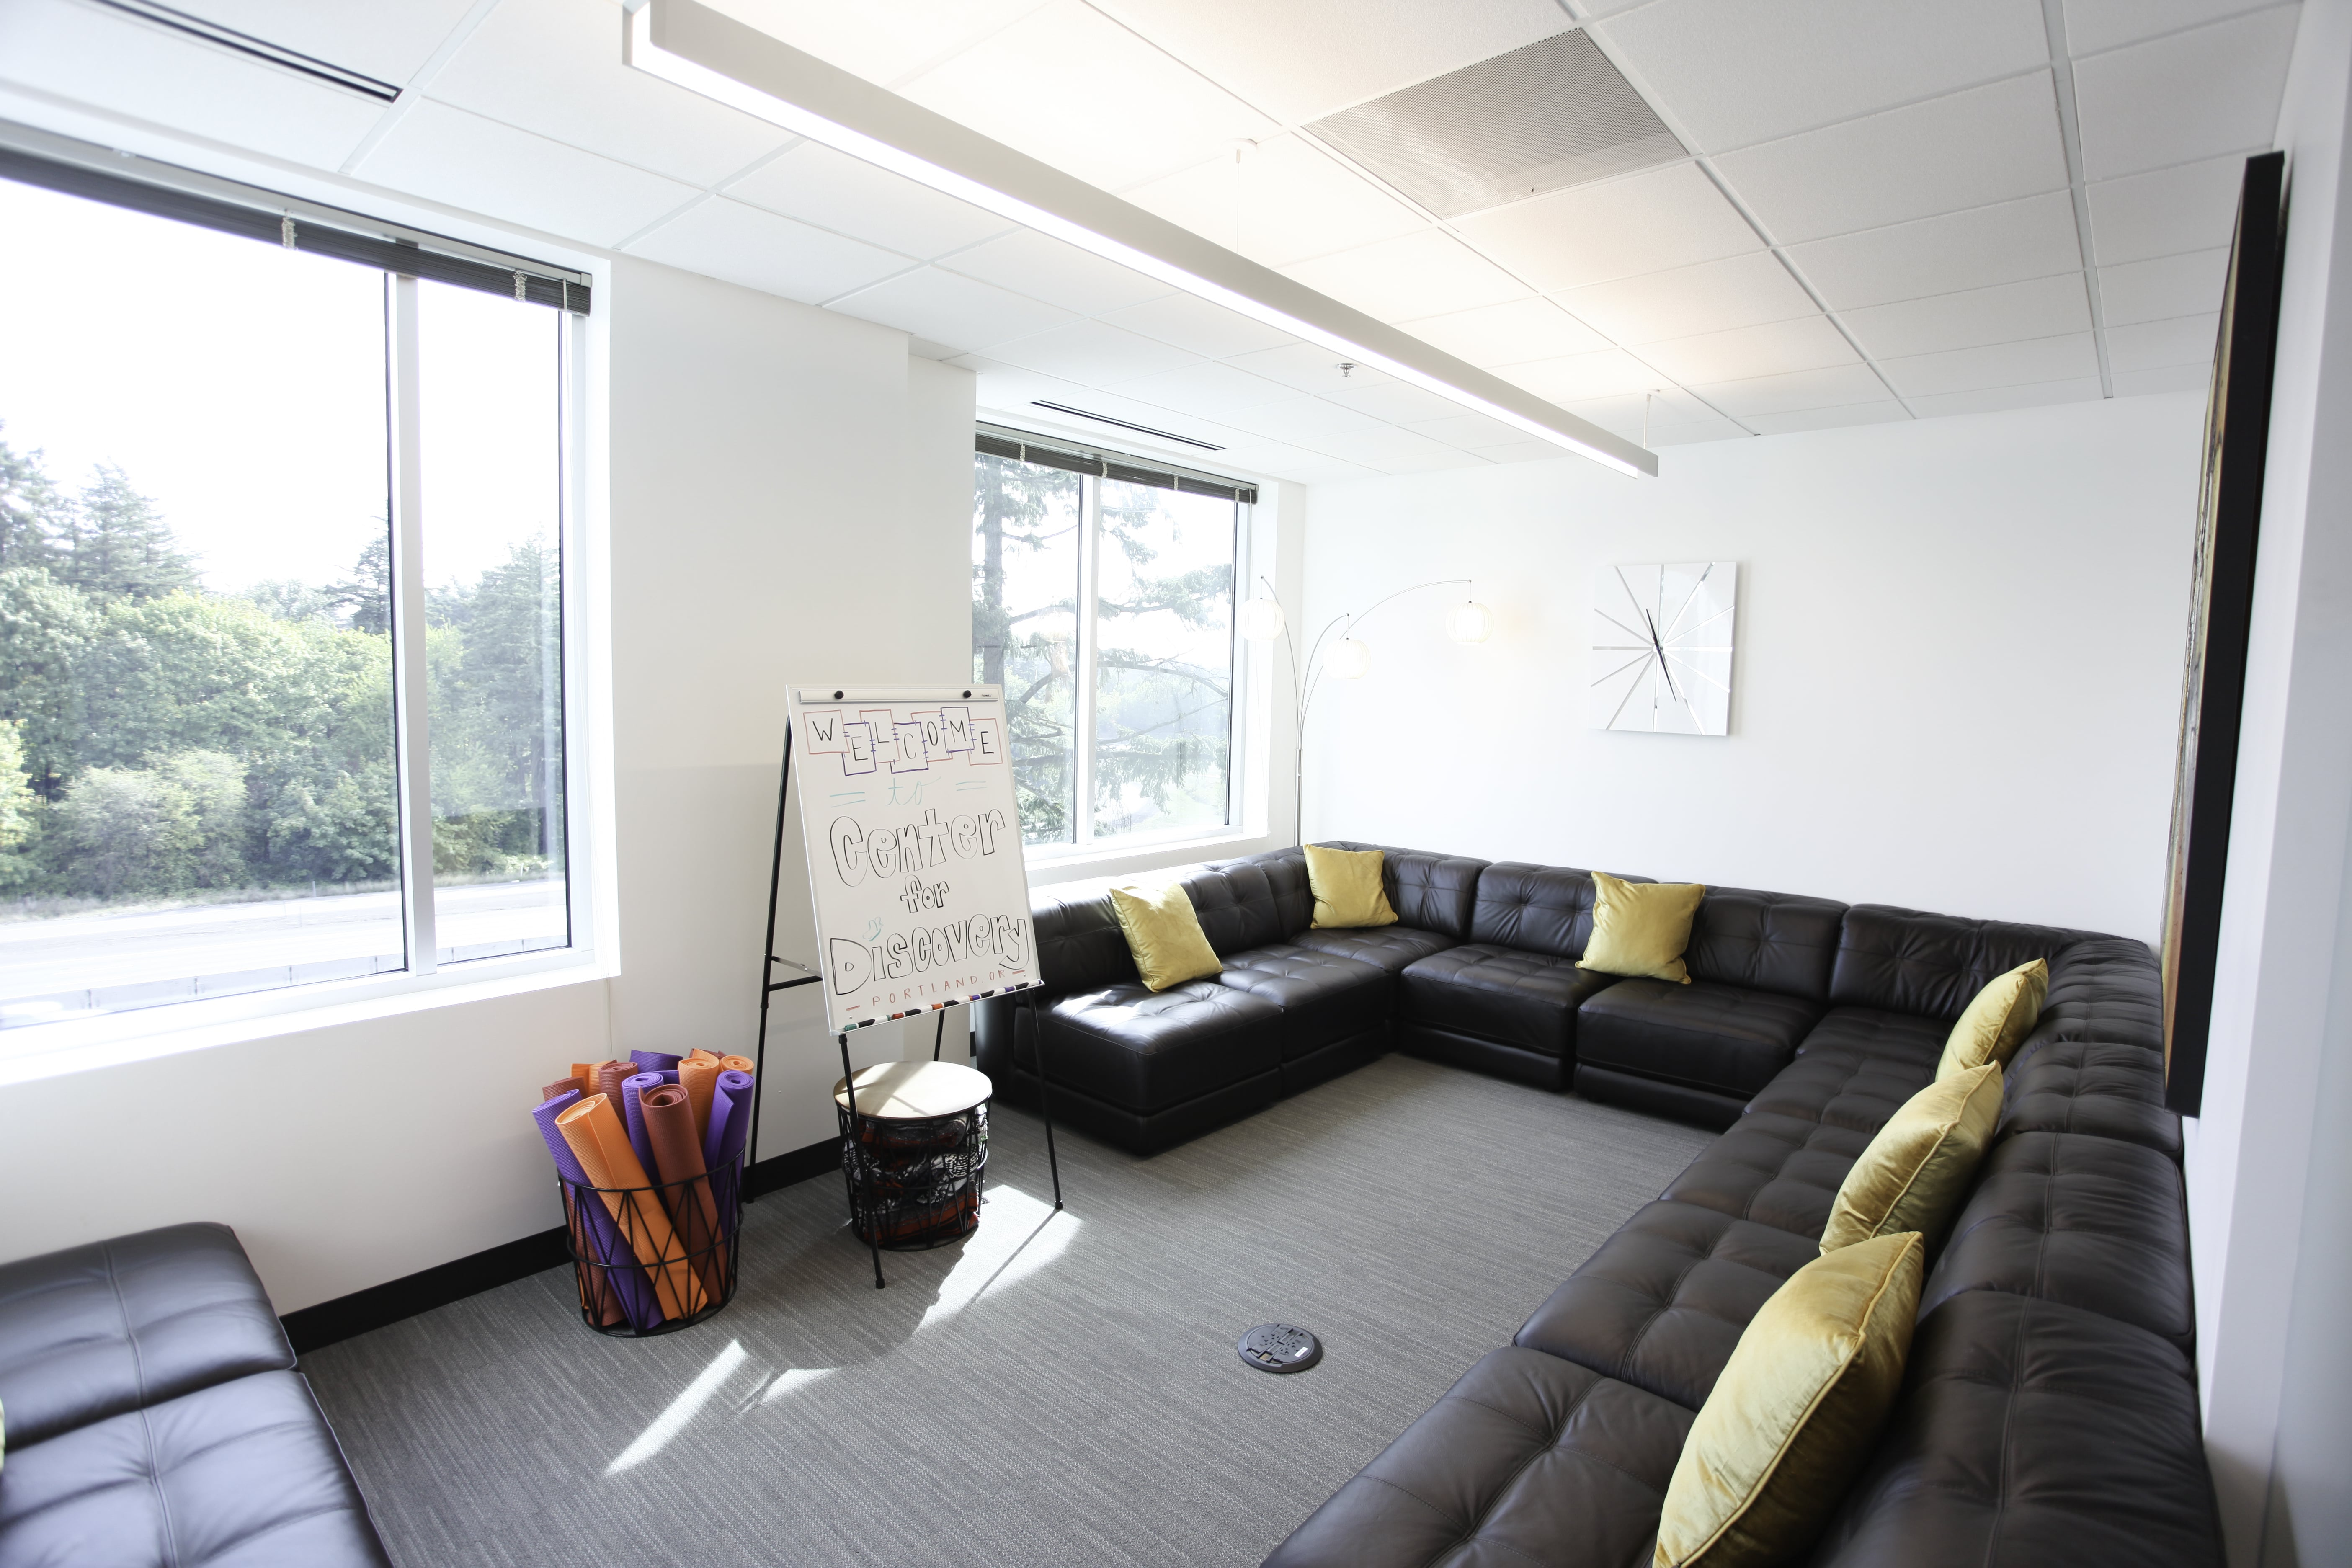 Center For Discovery | Portland Outpatient Treatment image 2